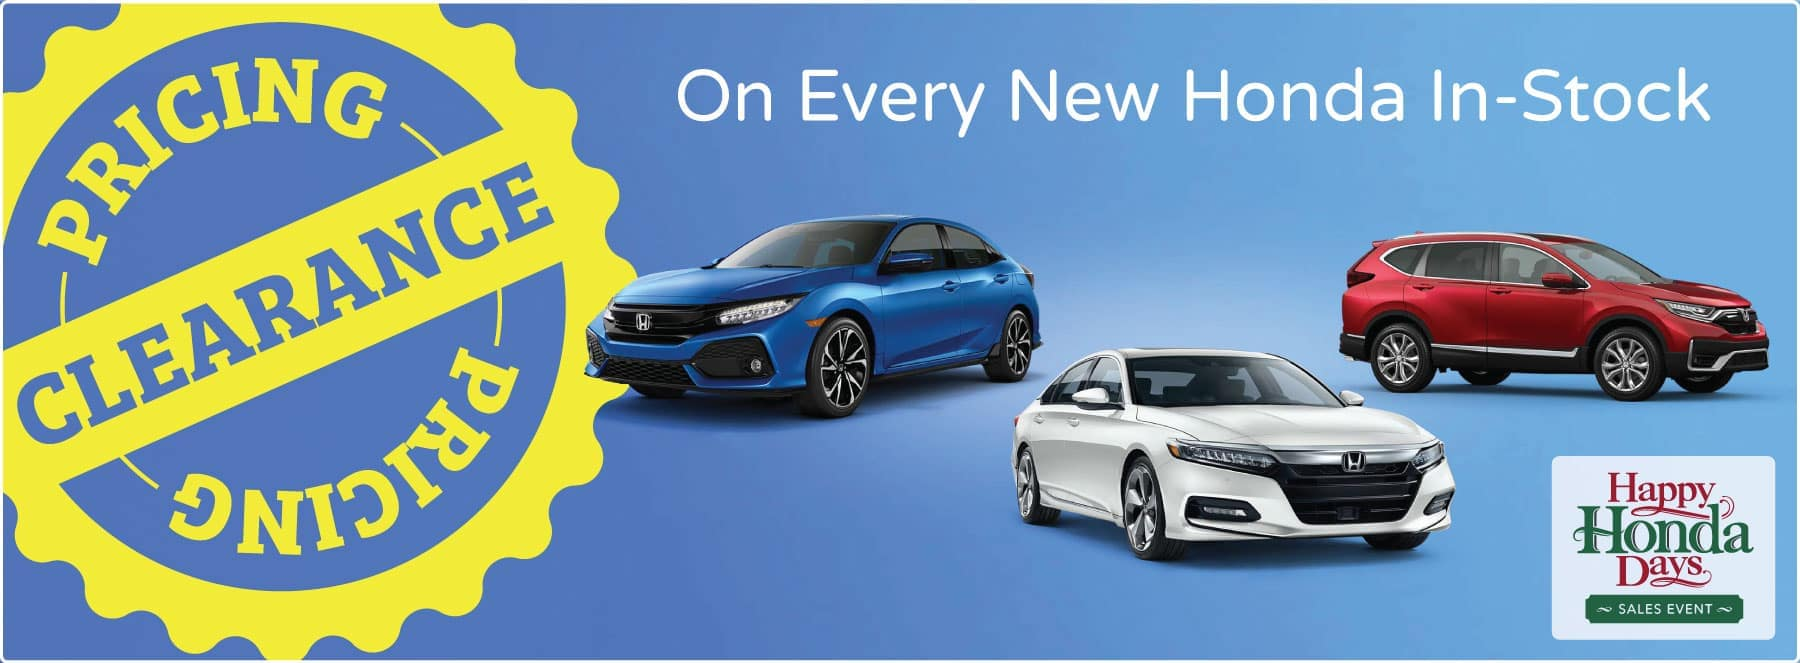 Happy Honda Days - Clearance pricing on every new Honda in-stock